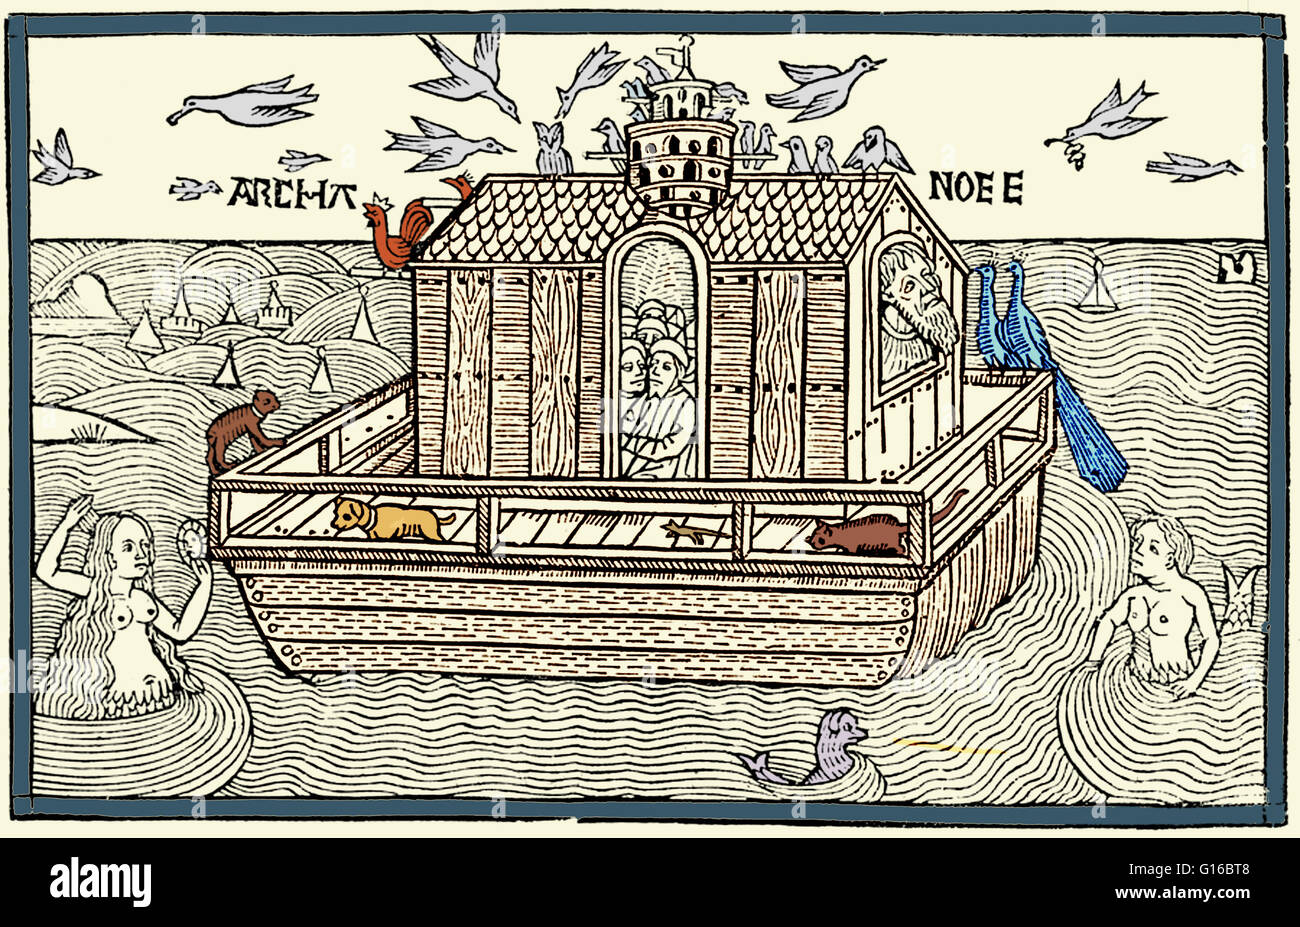 Color enhancement of a woodcut of Noah's Ark with merfolk from the Nuremberg Chronicle, 1493. Noah was the tenth - Stock Image